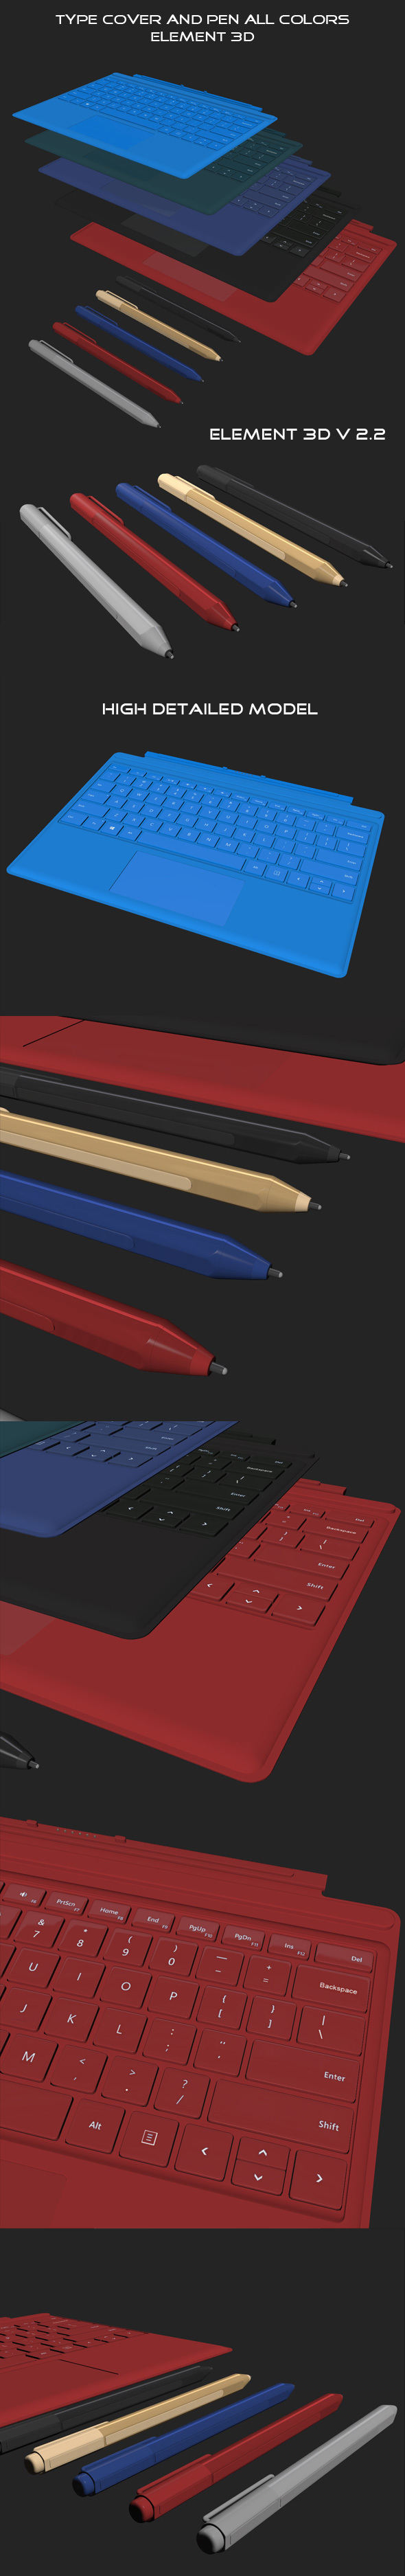 Element3D - Type Cover and Pen All Colors - 3DOcean Item for Sale